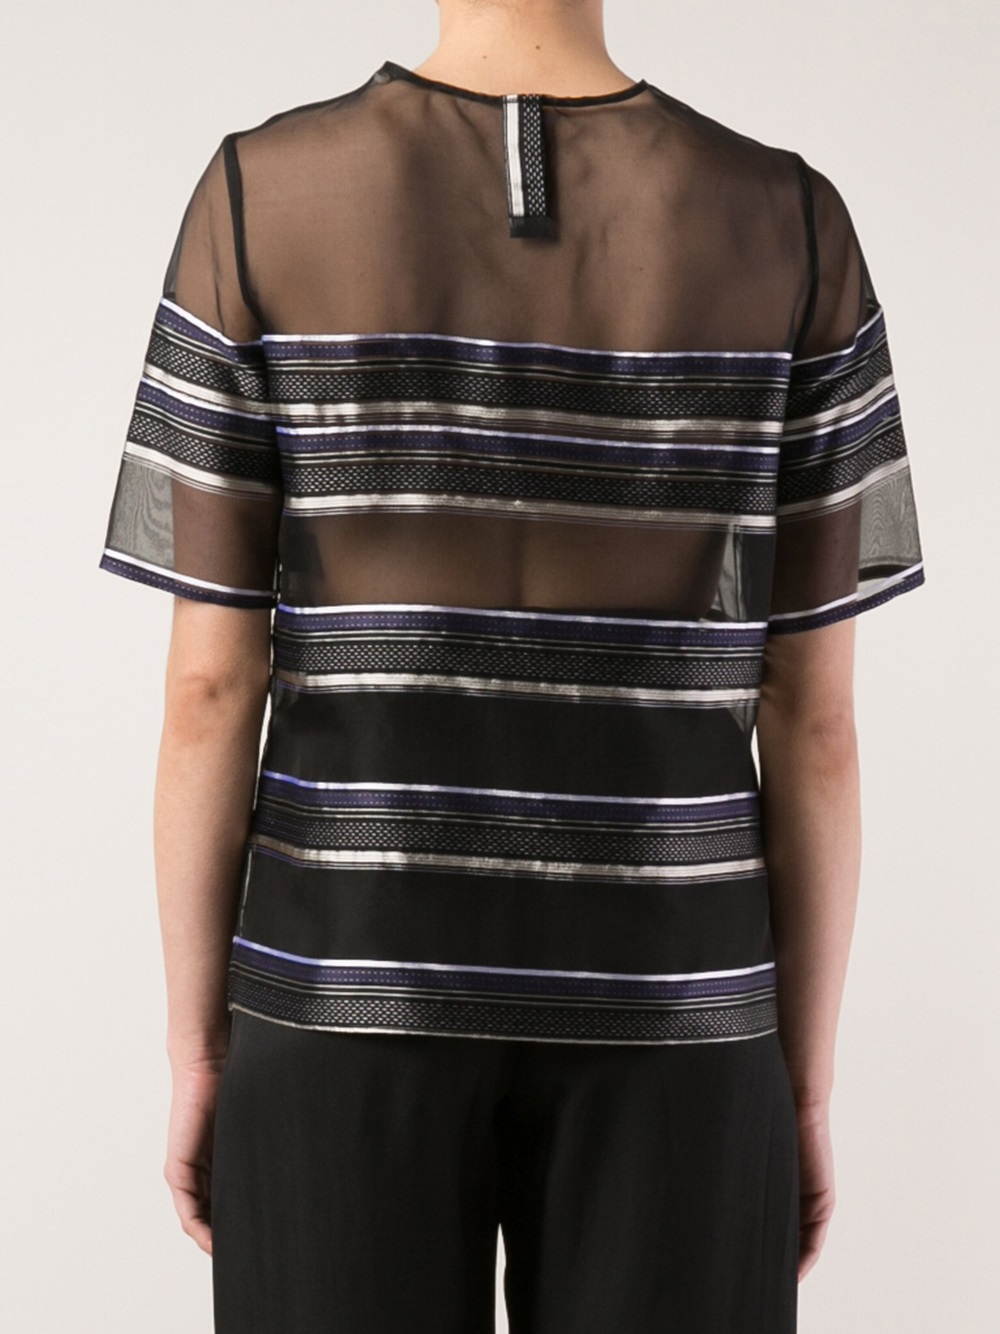 Lyst adam lippes sheer panel tshirt in black for Adam lippes t shirt